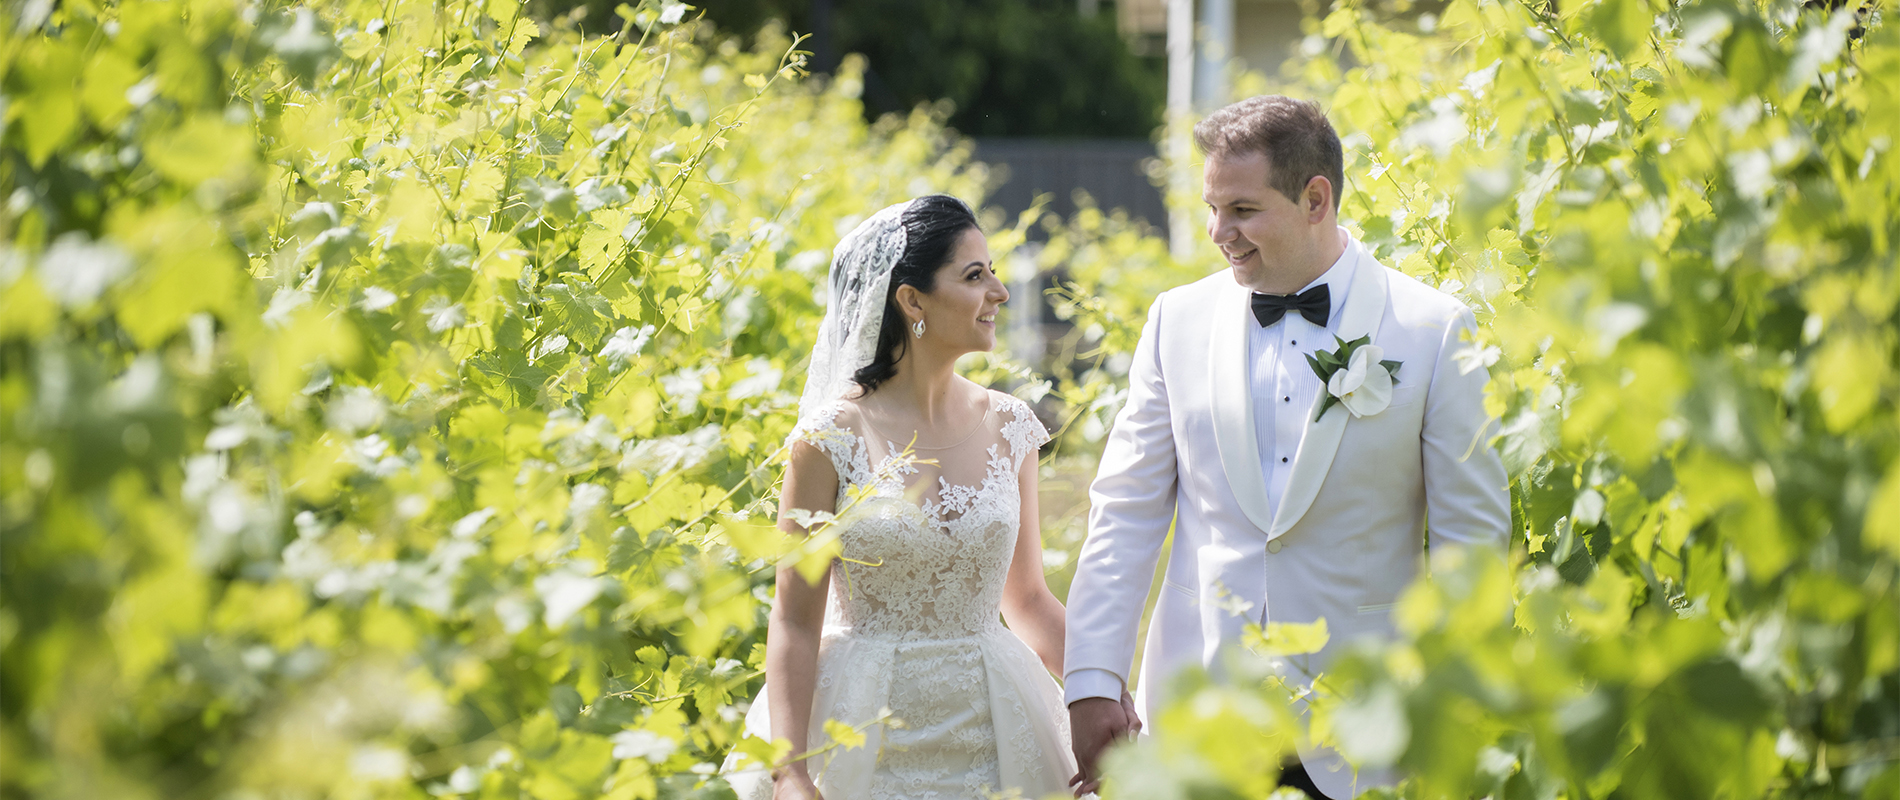 Affordable wedding photography - Belle Photo